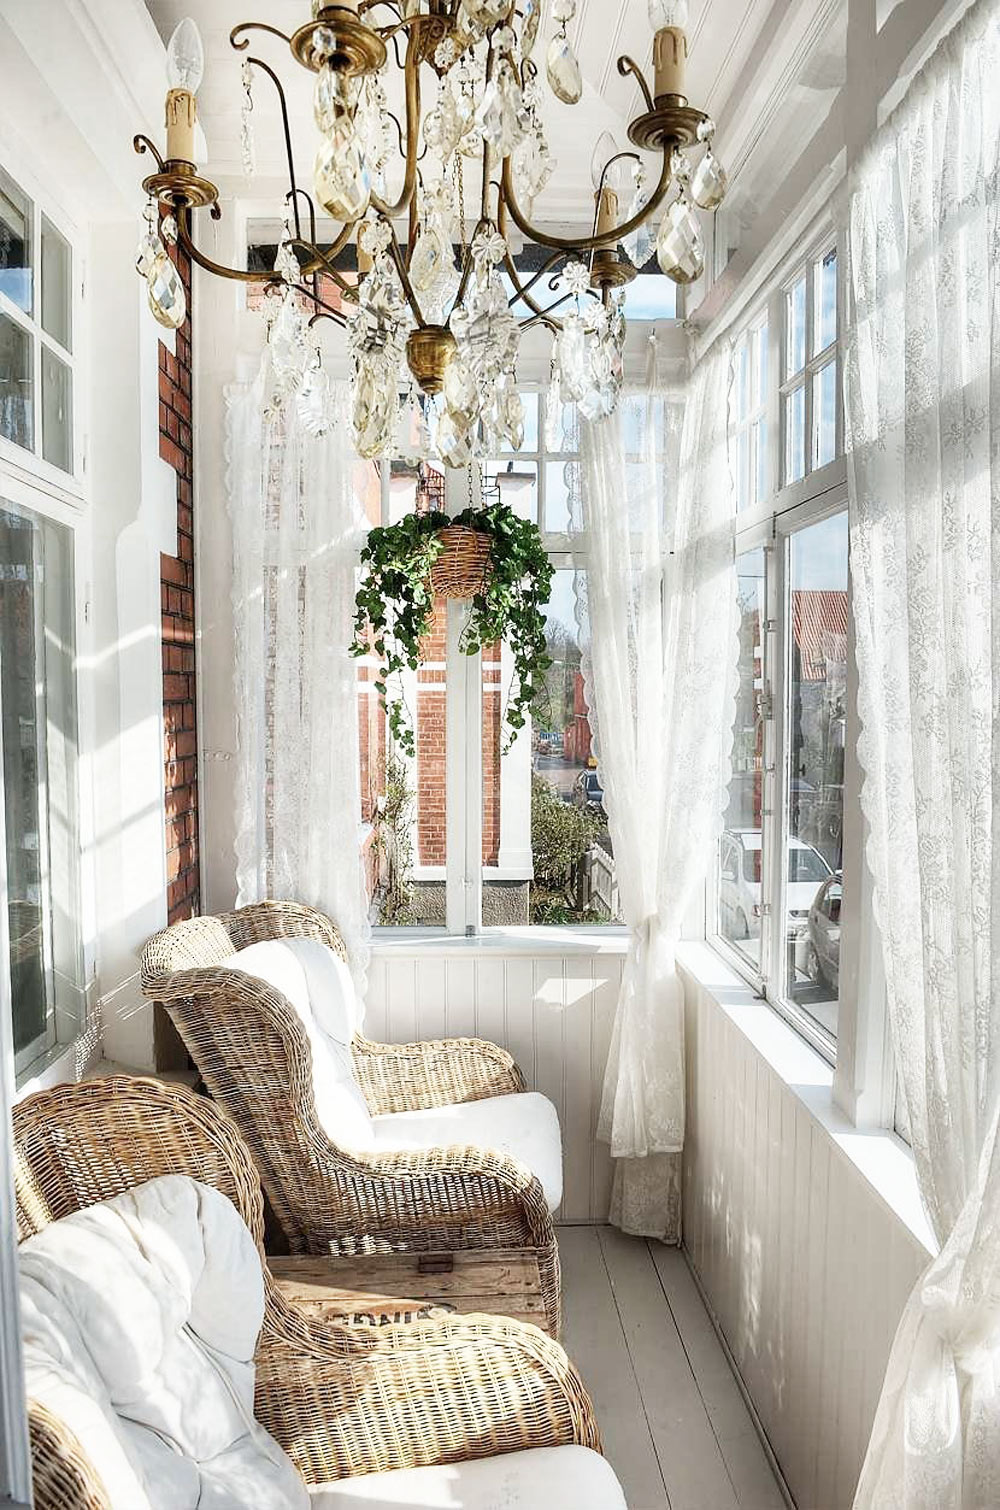 Oracle, Fox, Sunday, Sanctuary, White, Out, White, Interiors, industrial, sunroom, lace, curtains